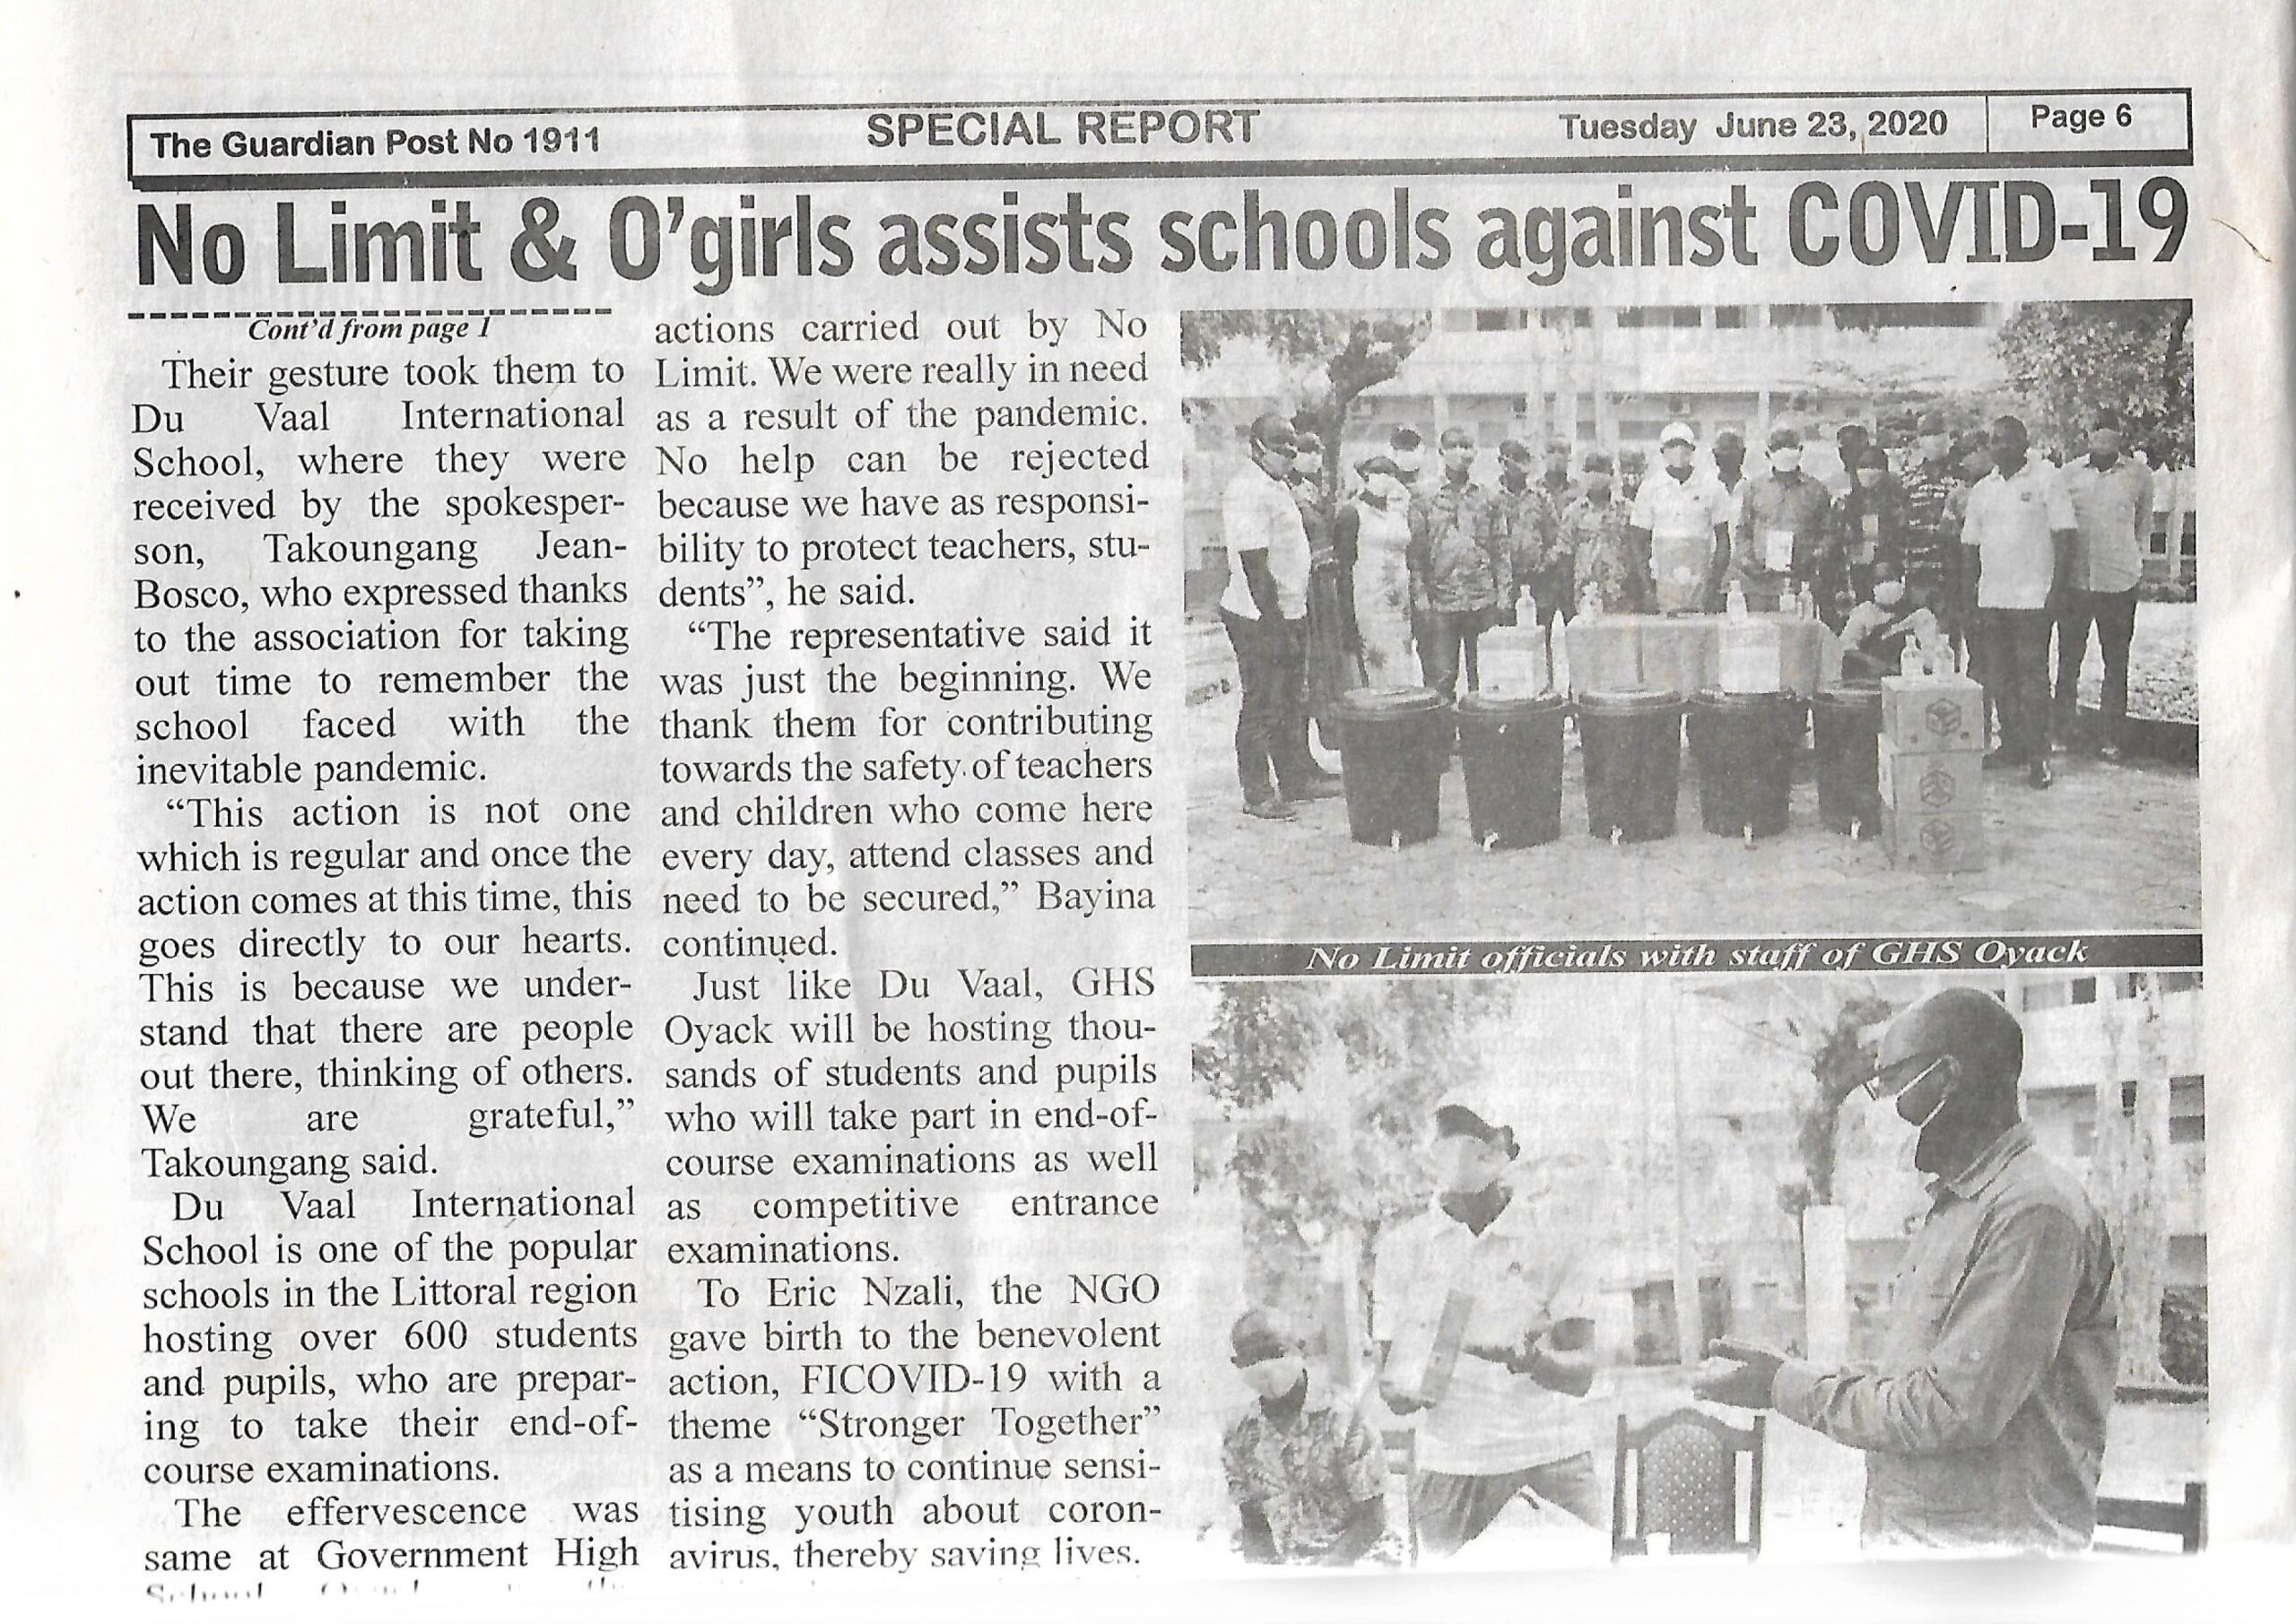 The Guardian Post Newspaper : No Limit & O'Girls assists Schools against COVID-19